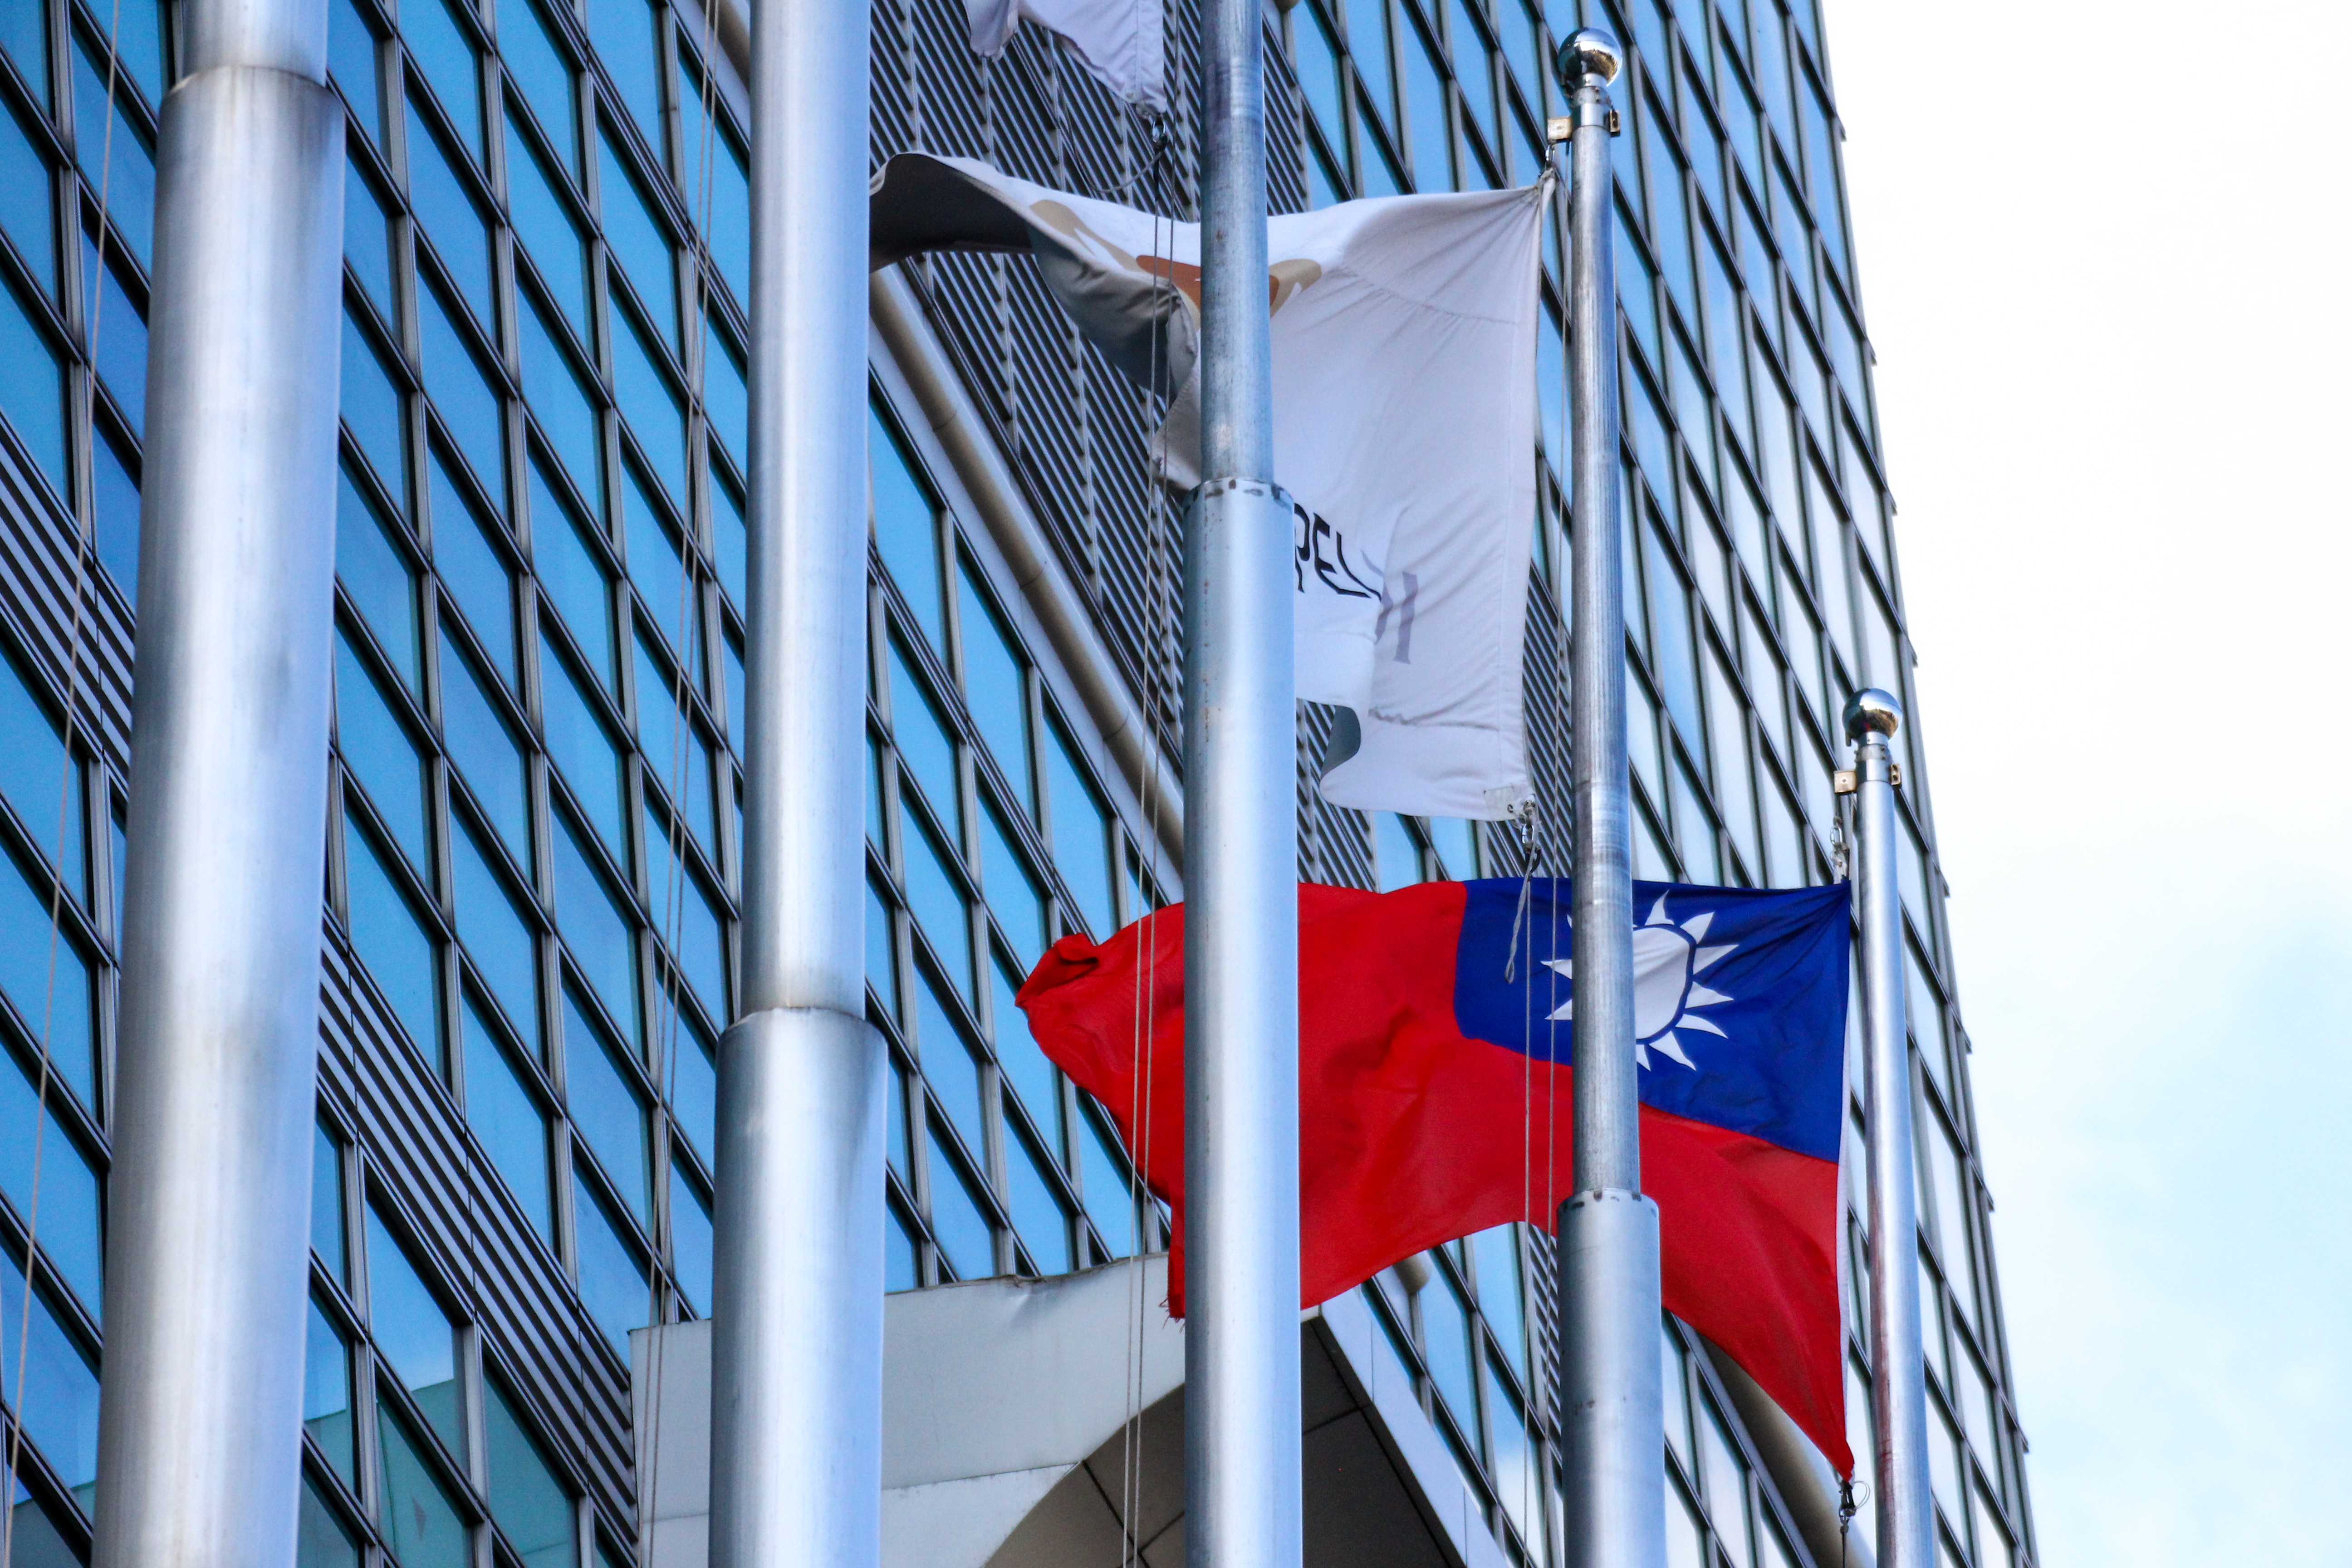 Ashley Madison Experiences Spike in Taiwan Following Decriminalisation of Adultery